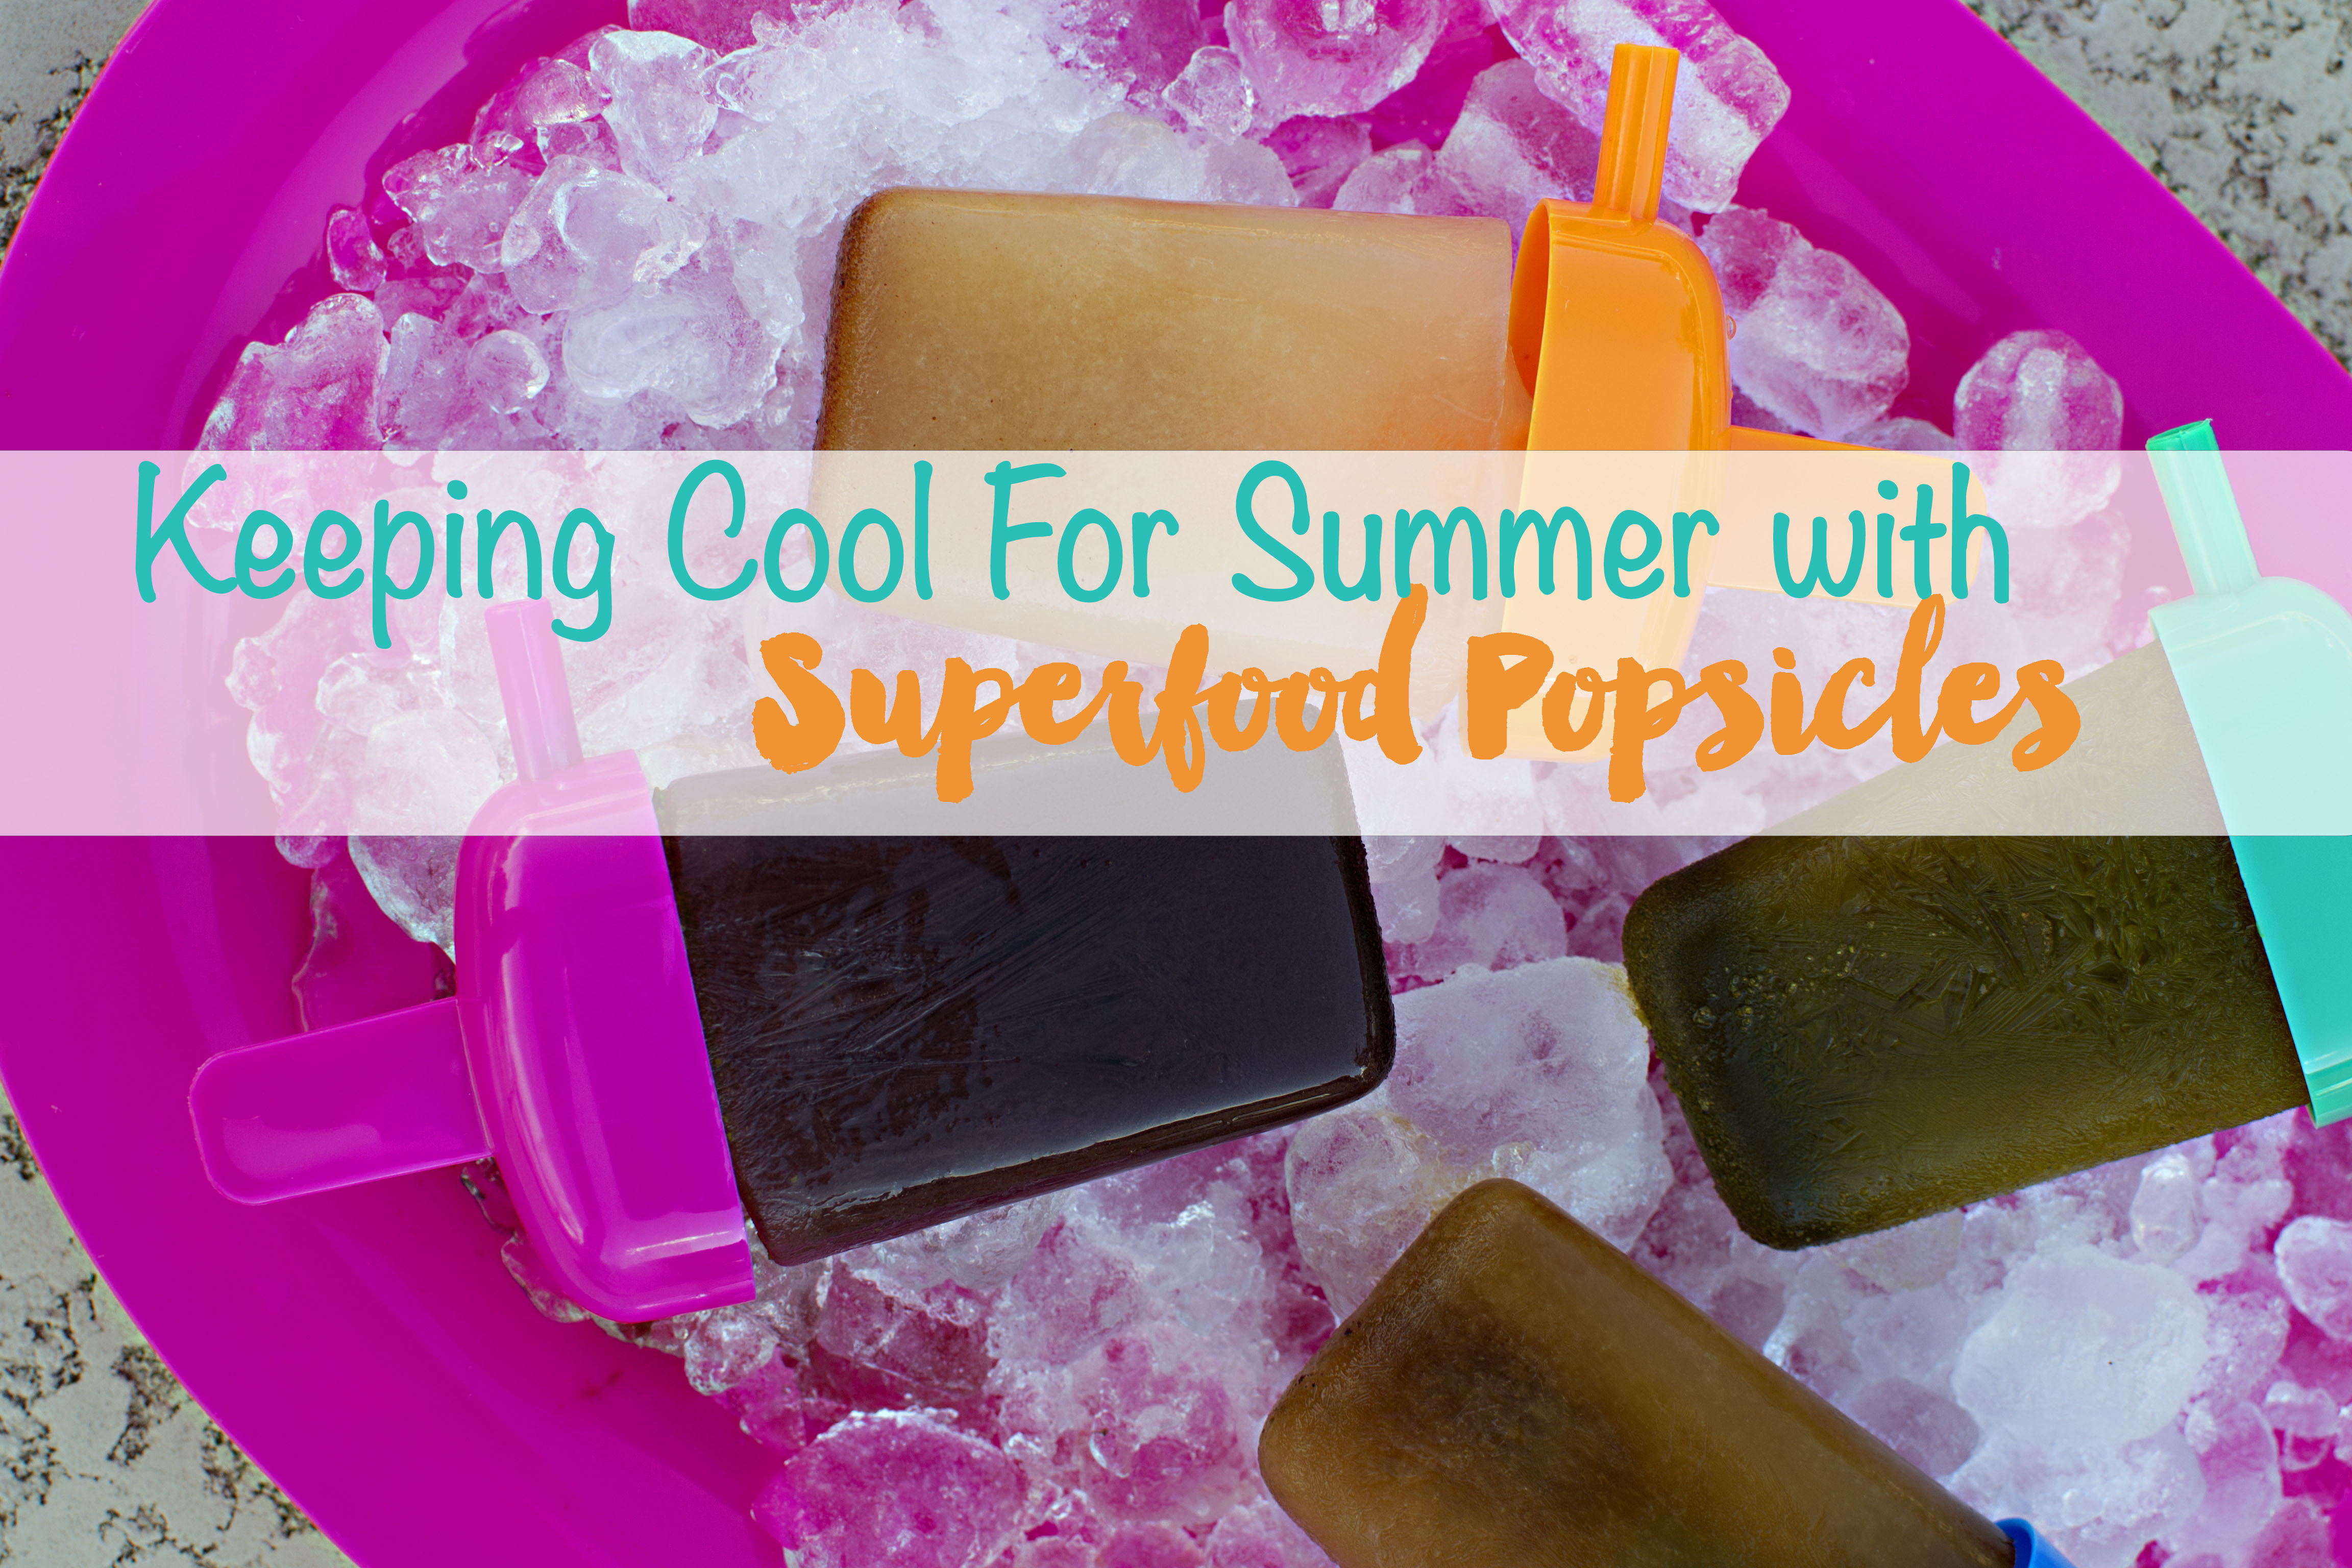 superfoodpopsicles